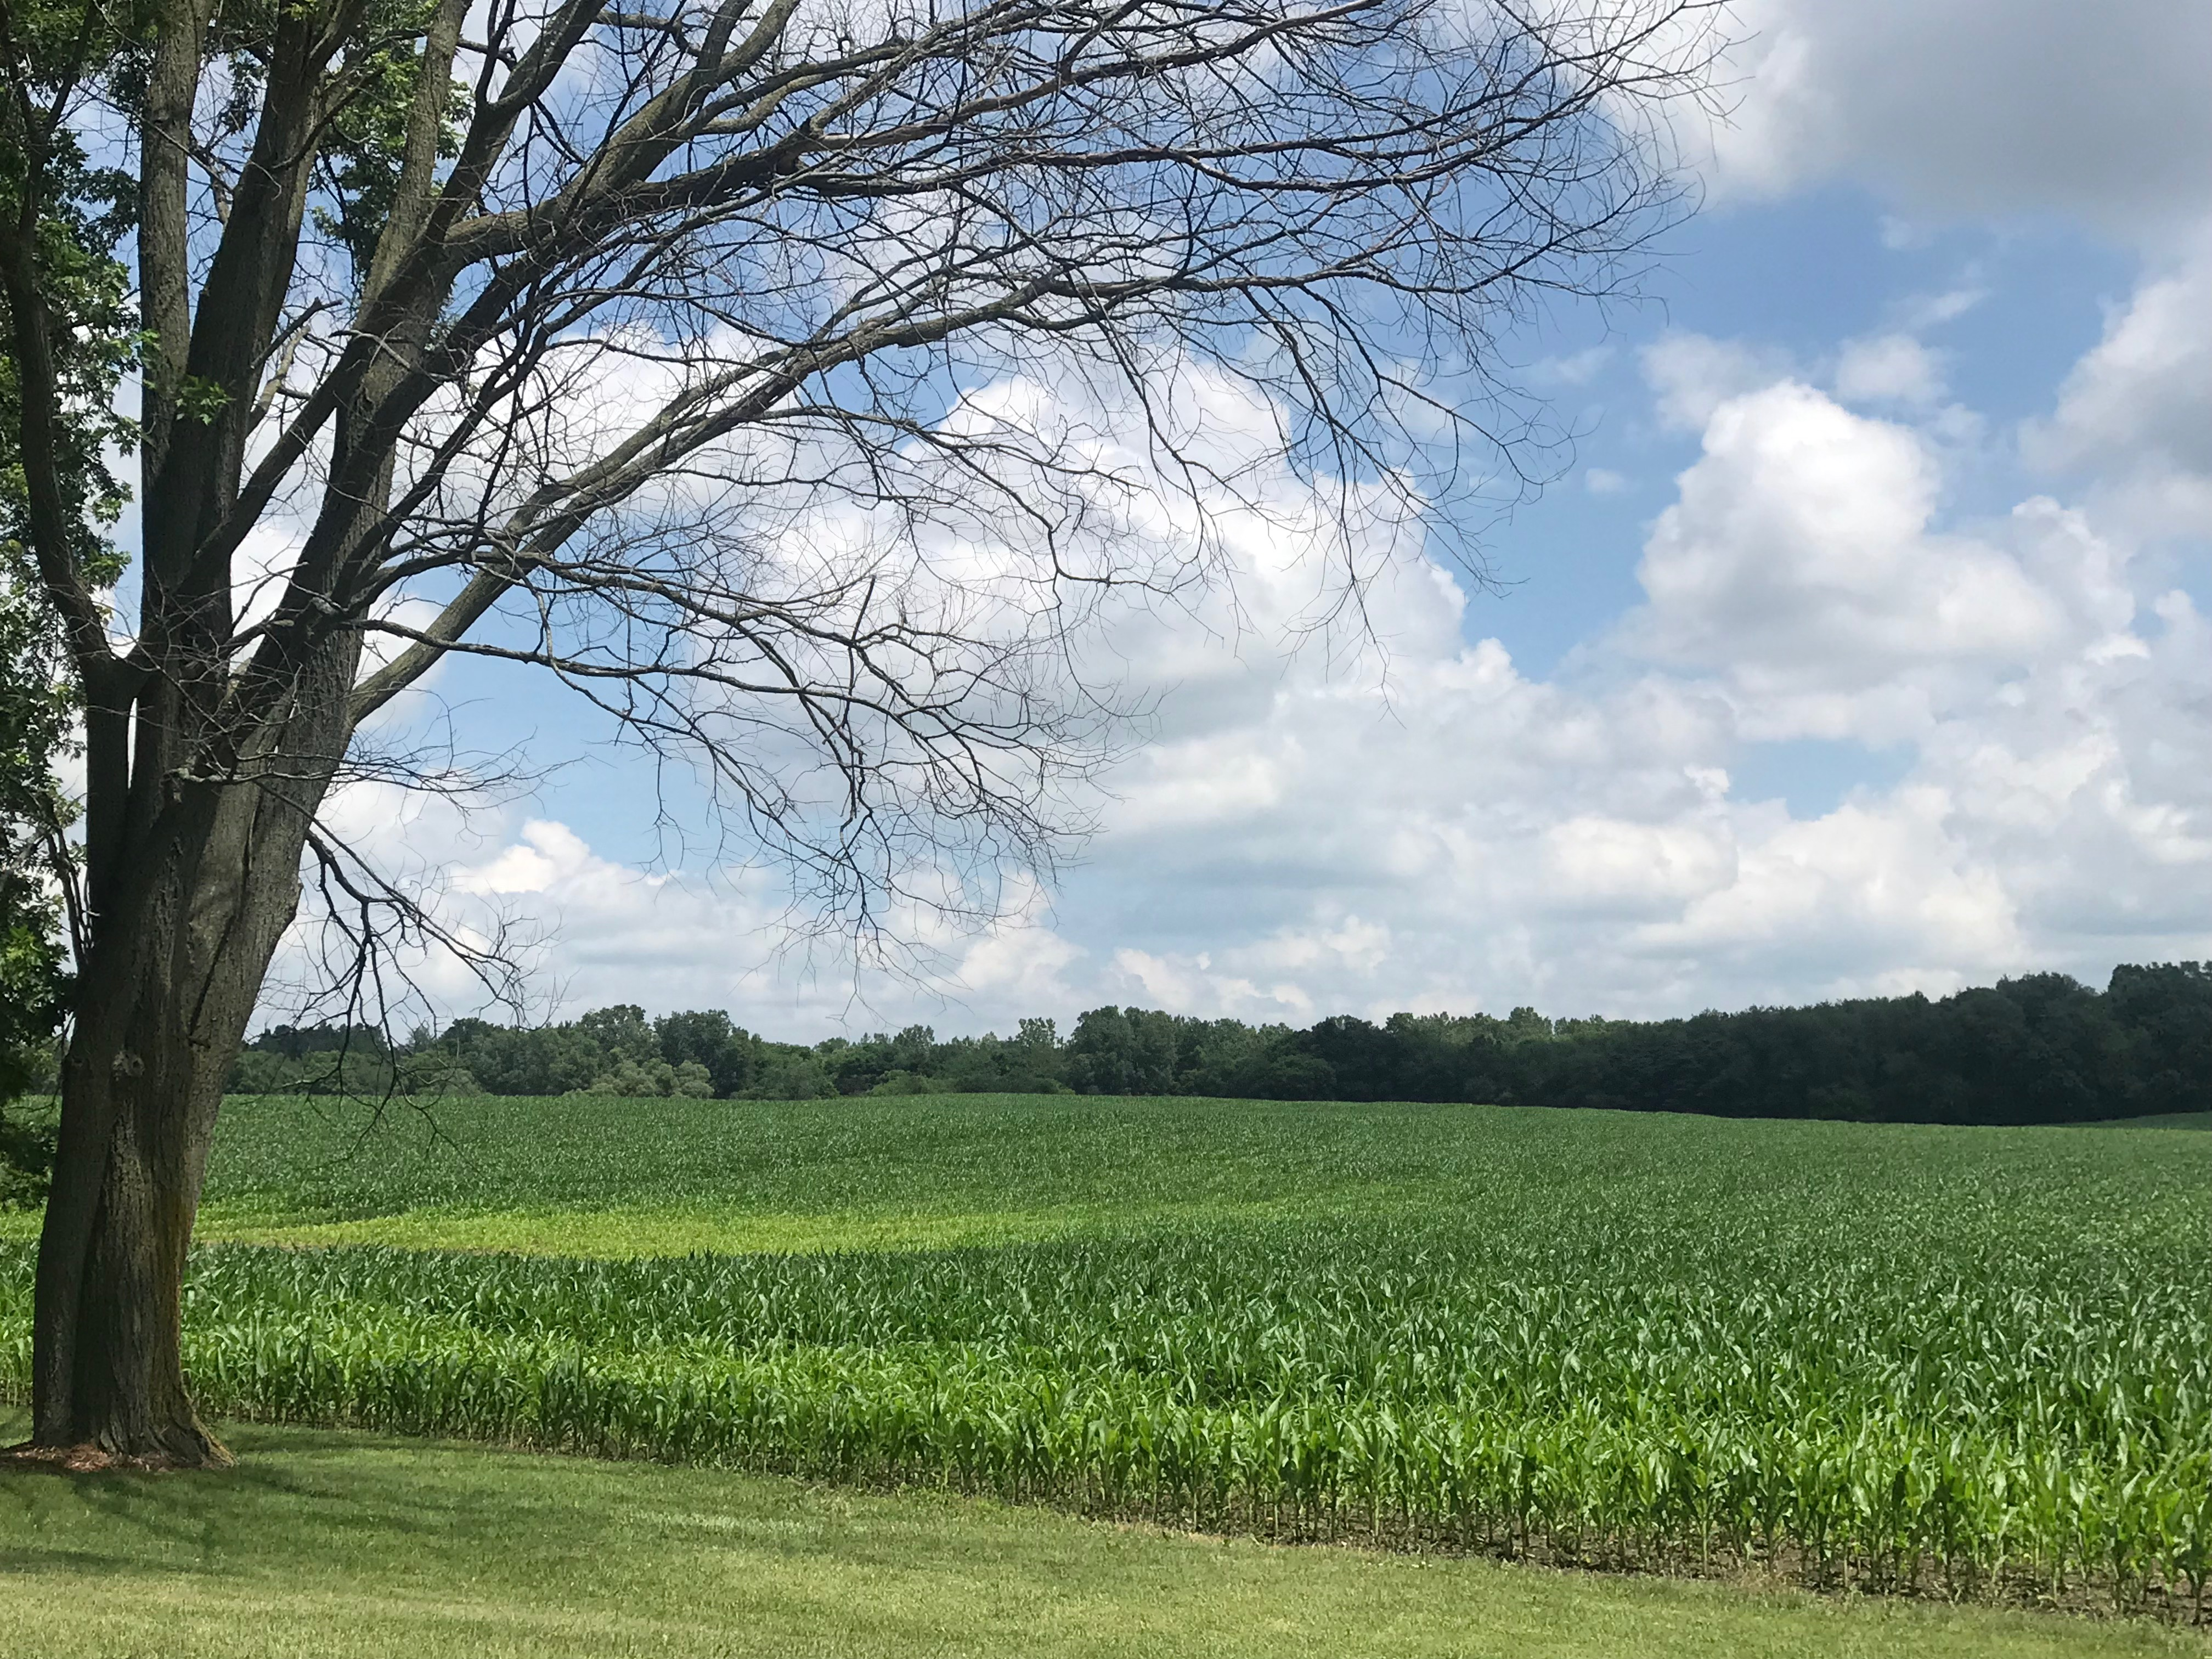 Most Michigan corn isn't knee-high by the Fourth of July, and it could lead to higher grocery prices